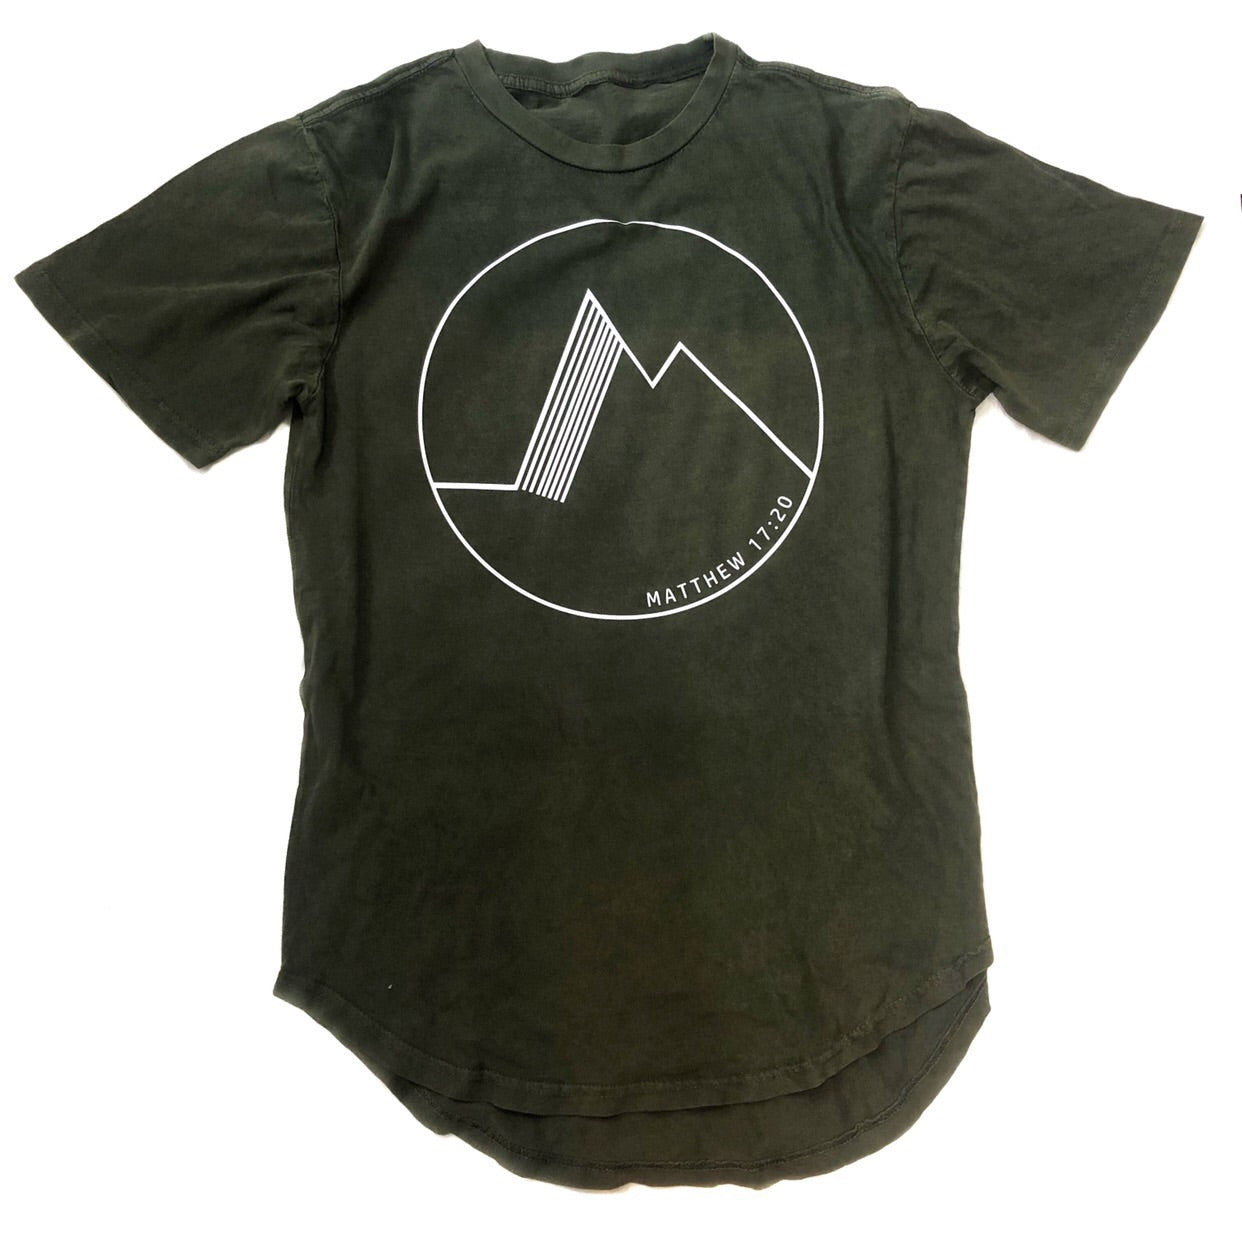 Matthew 17:20 Mineral wash long body tee